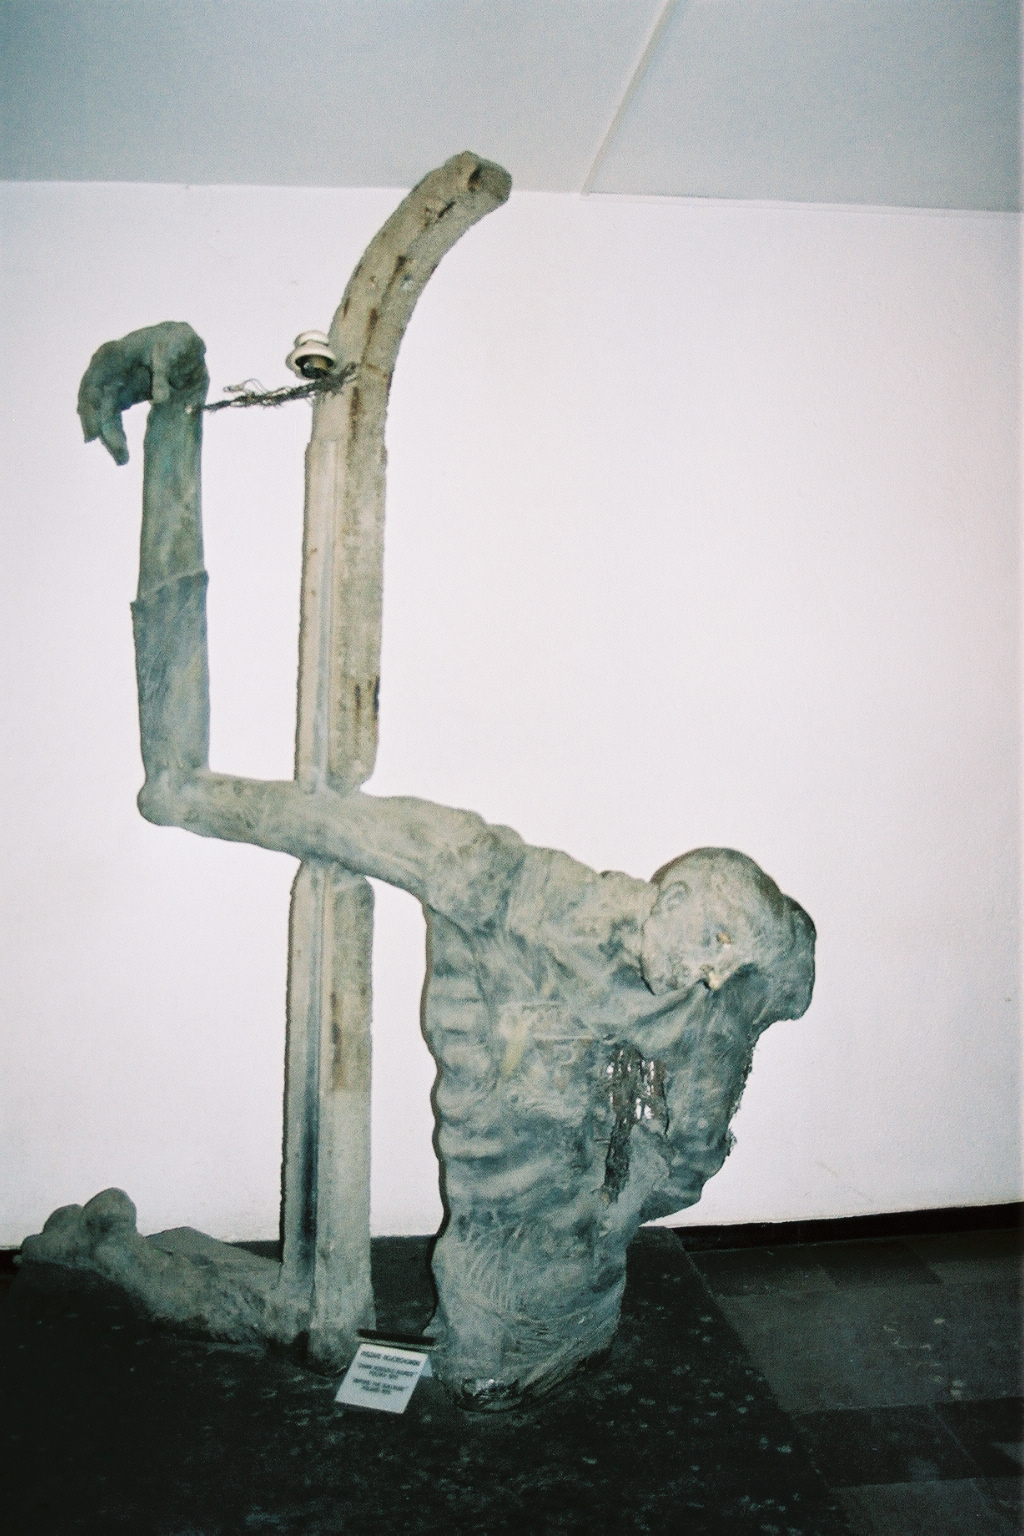 Auschwitz 2 sculpture